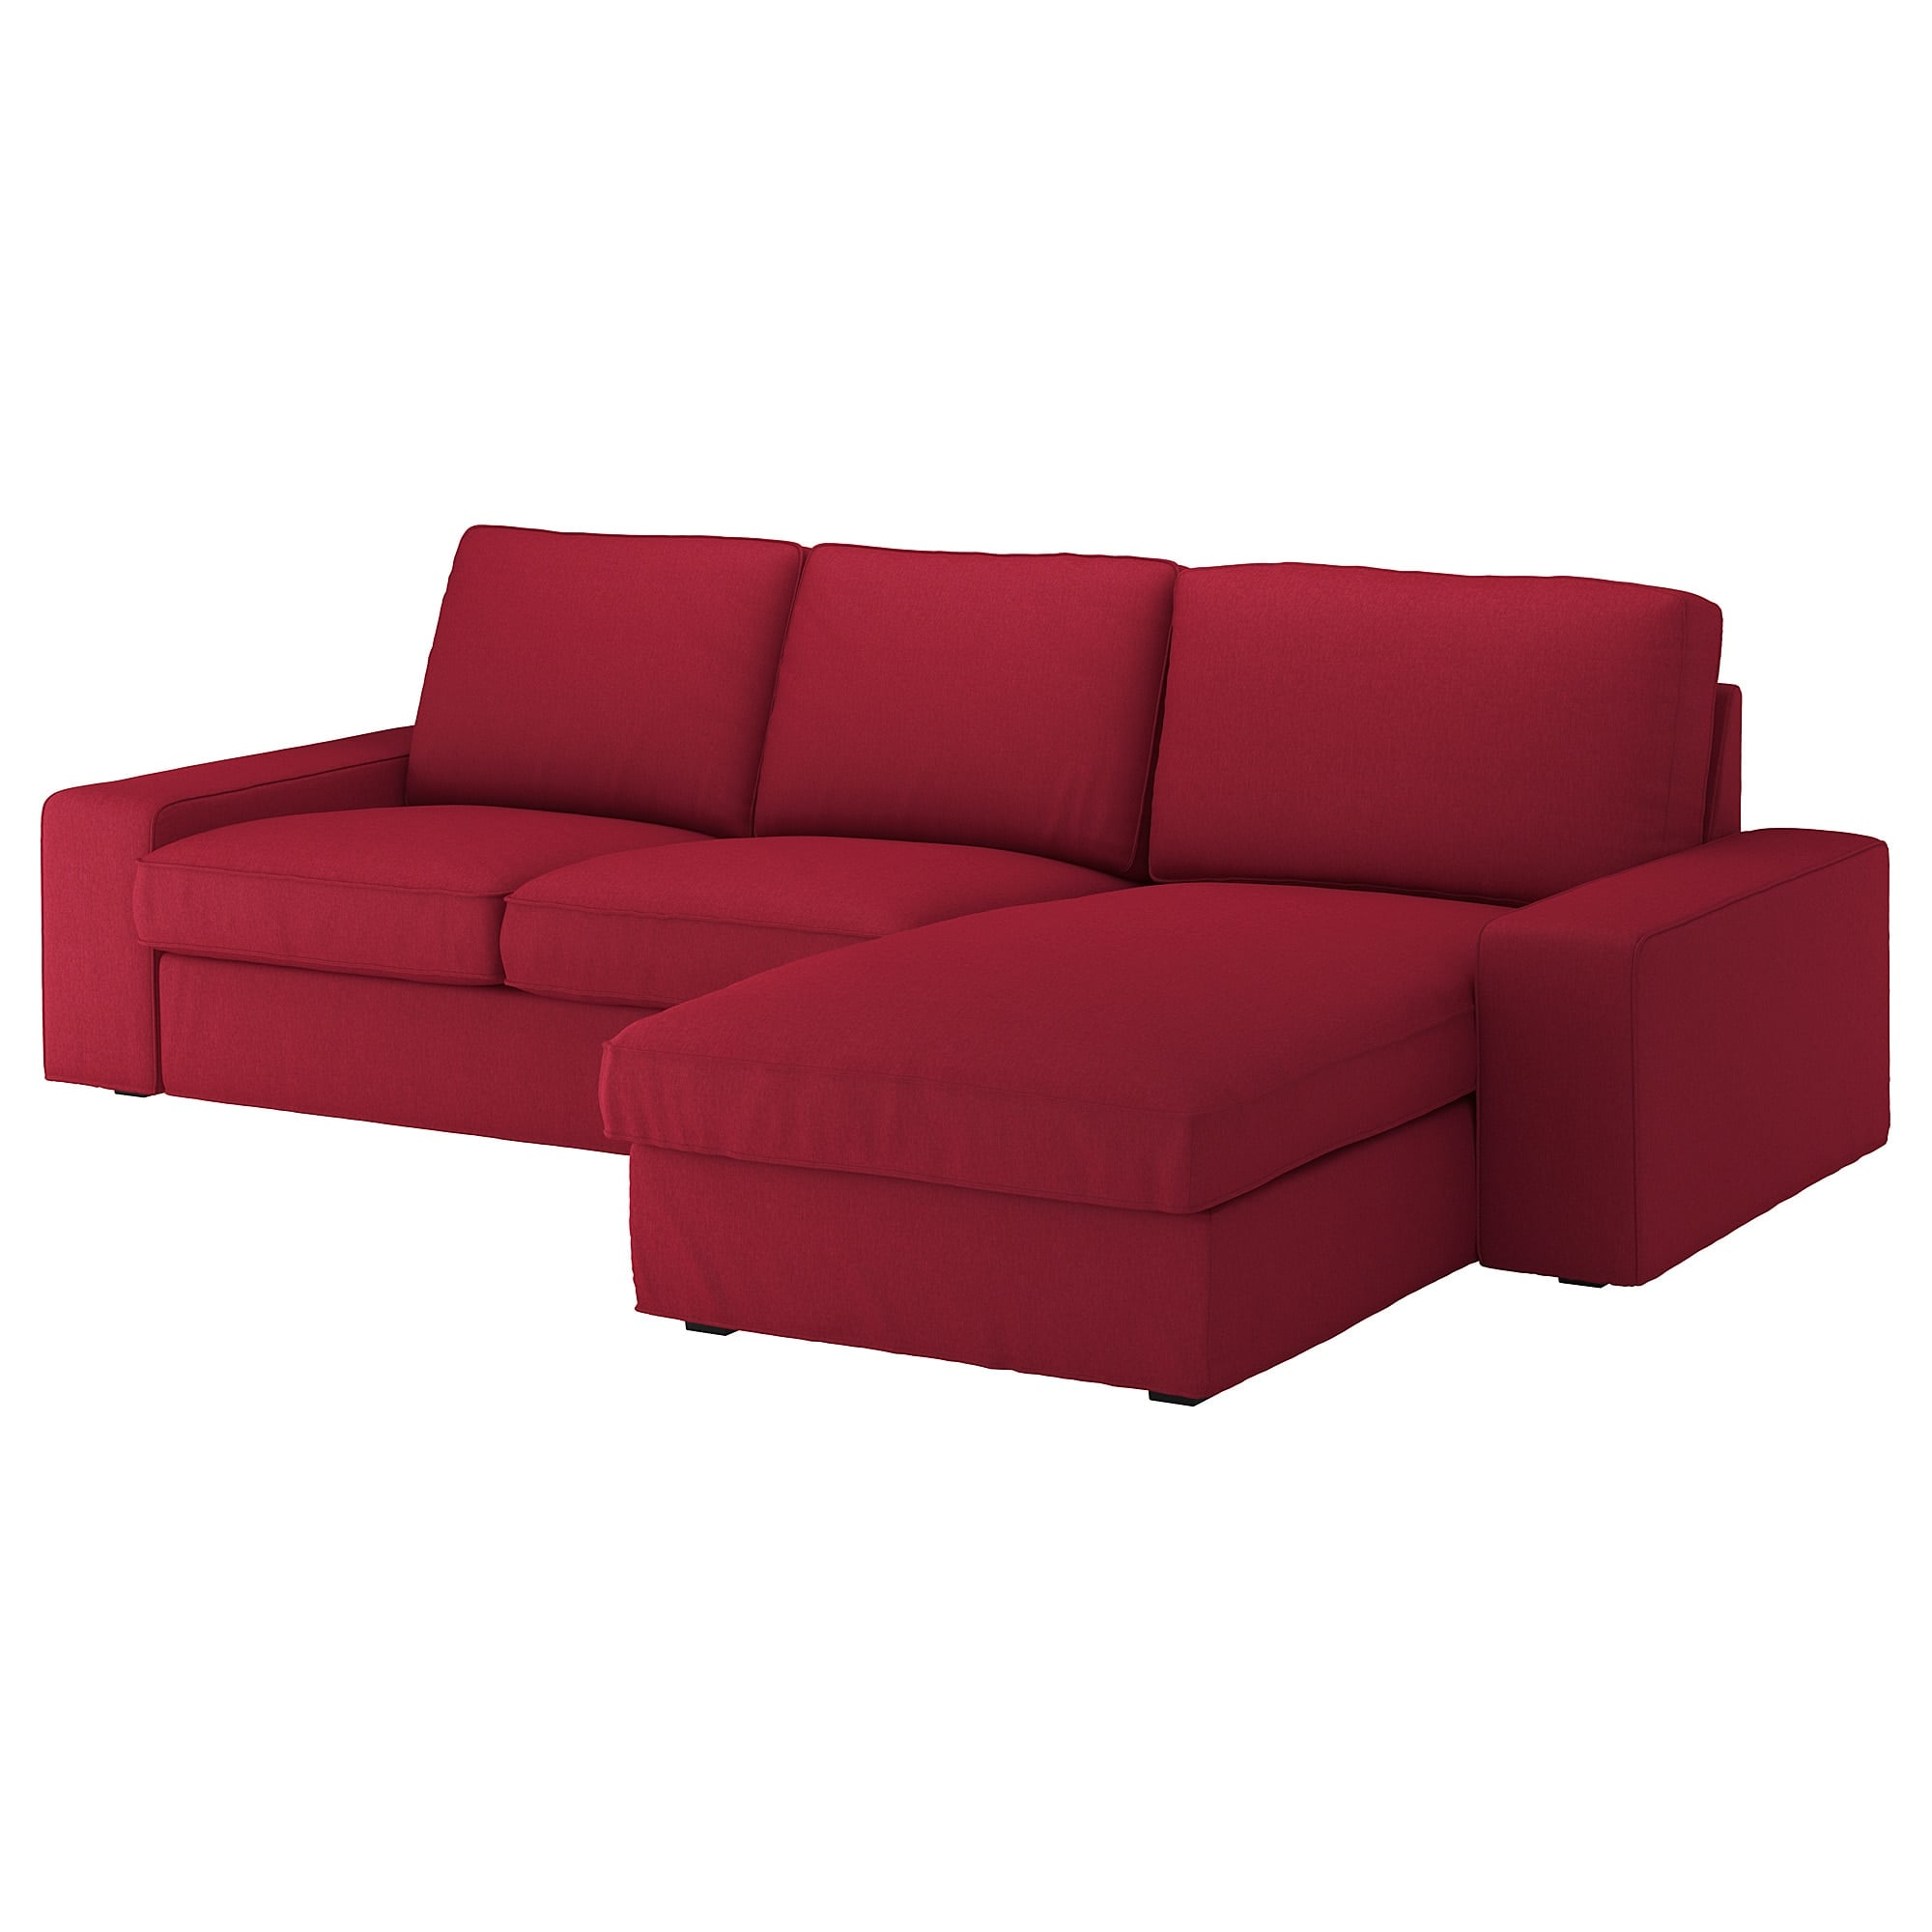 Kivik Sofa With Chaise | Alert, Alert, Shoppers: Ikea Has